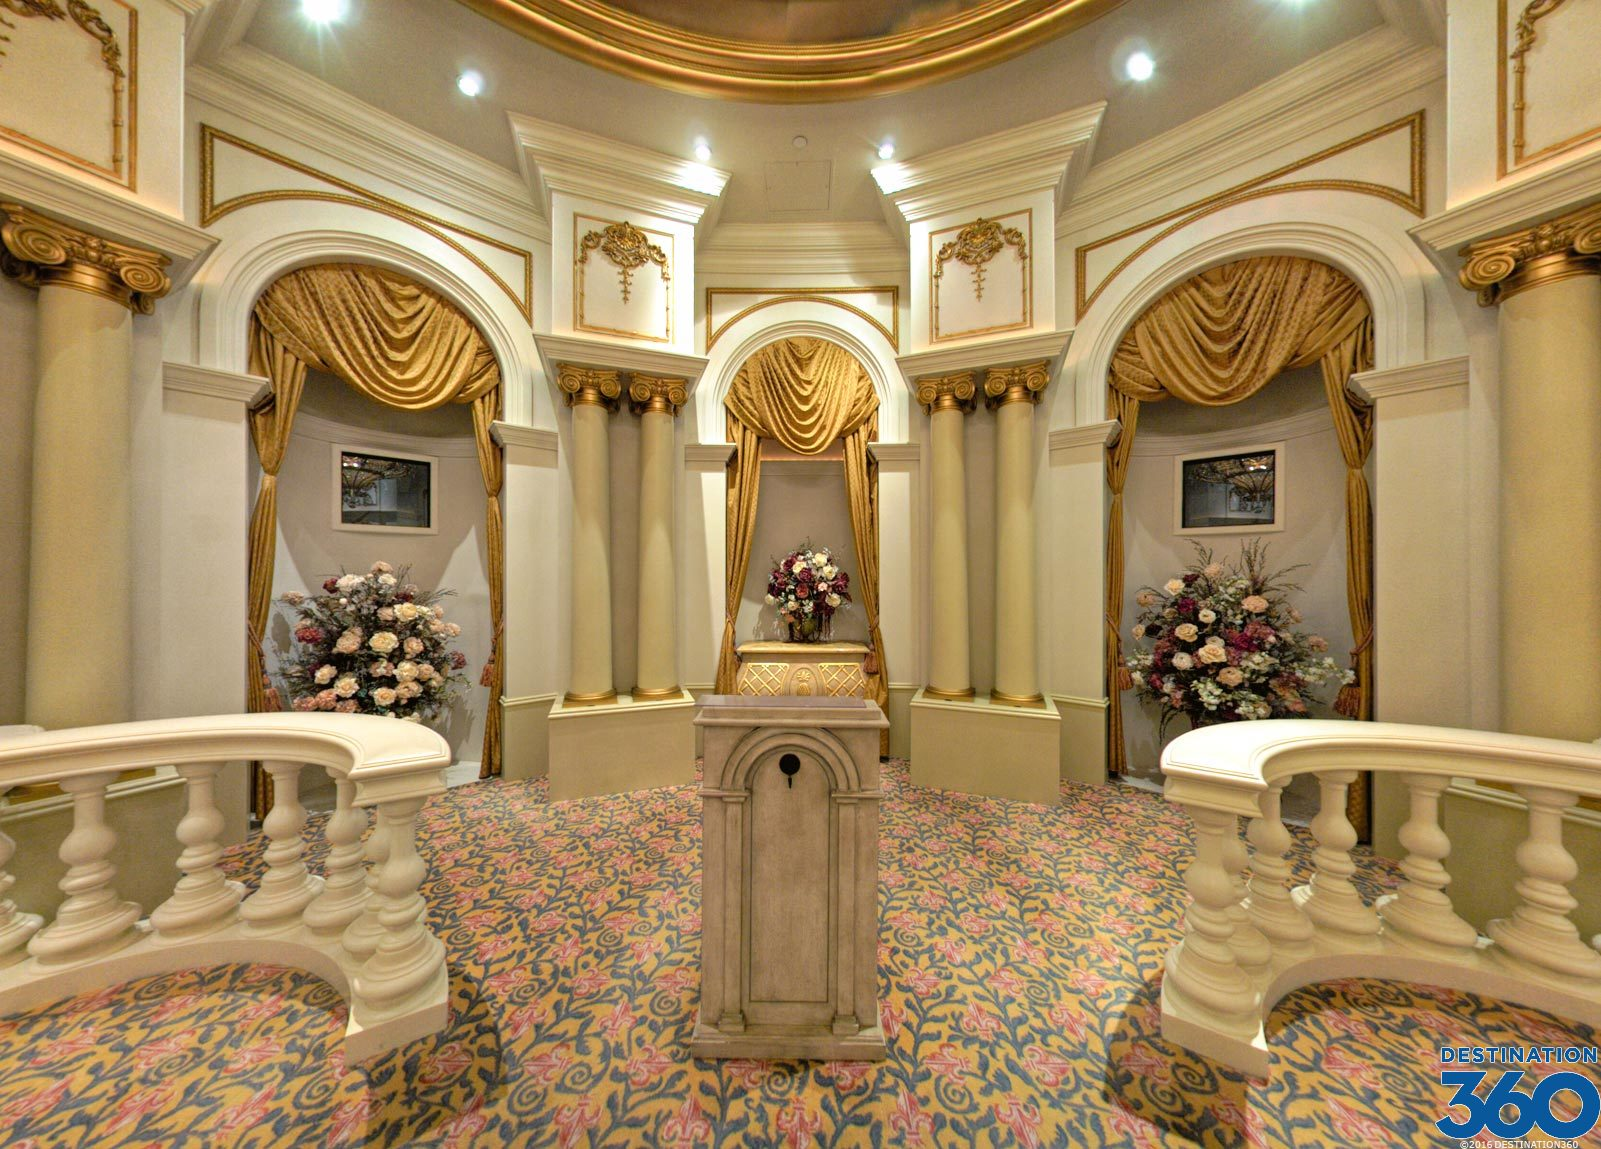 The Paris Las Vegas wedding chapel is a highly popular place for couples to